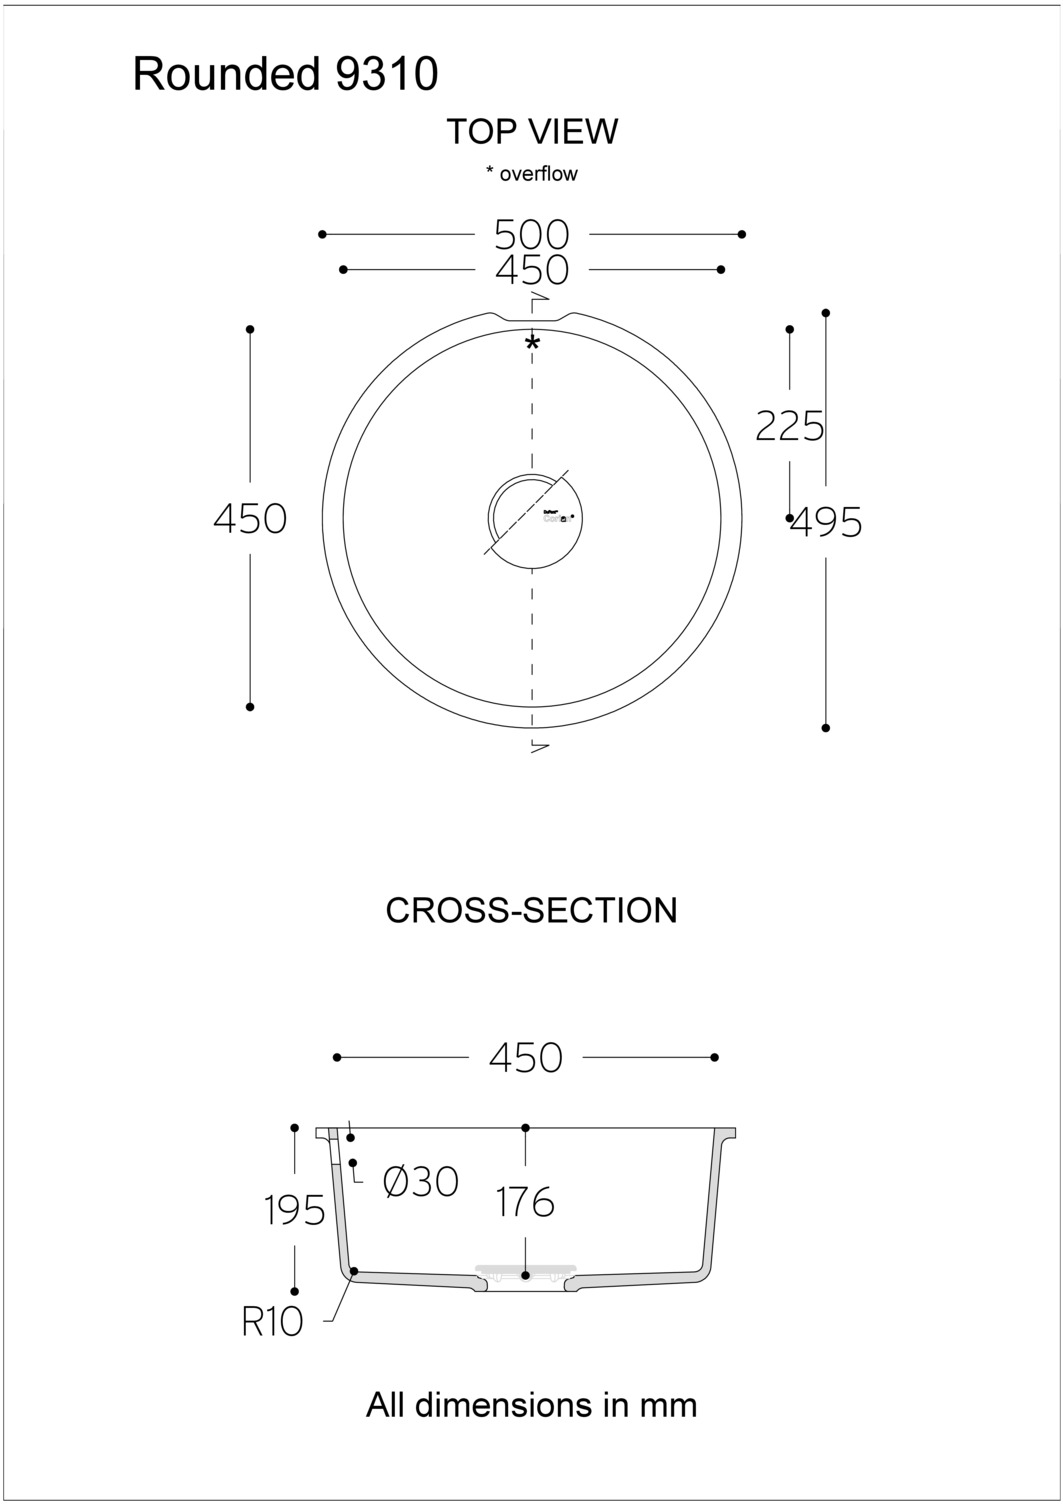 DUPONT_CORIAN_ROUNDED9310_2D_PDF[0]